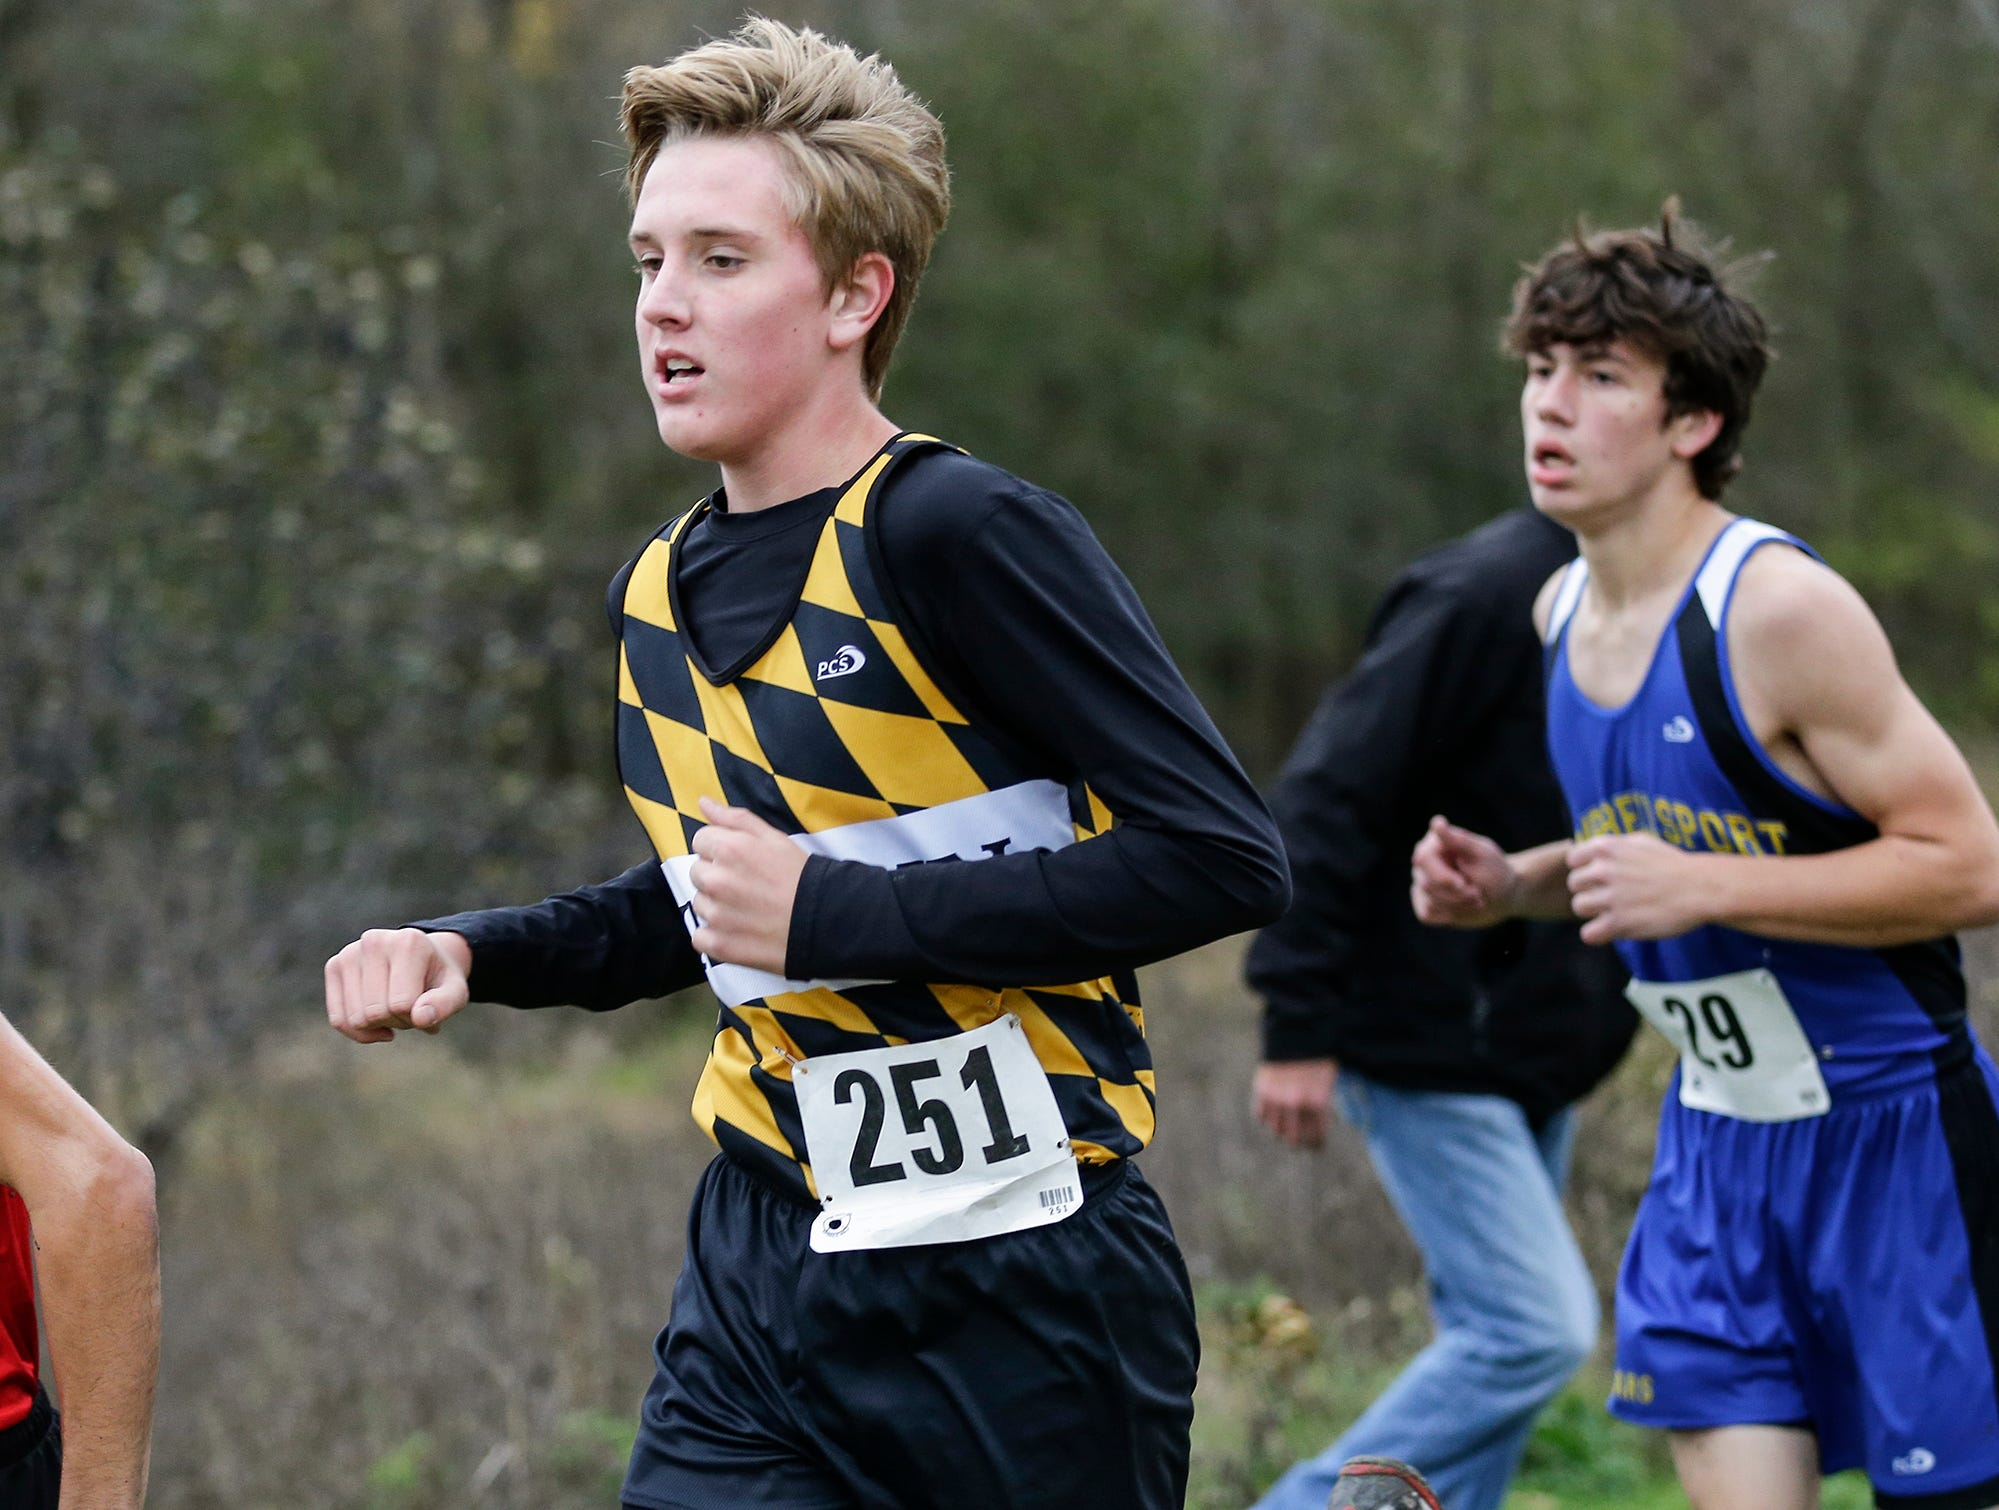 Waupun High School's Levi Kastein runs in the WIAA Division two Mayville sectional cross country meet at the Mayville golf course Friday, October 19, 2018. Doug Raflik/USA TODAY NETWORK-Wisconsin